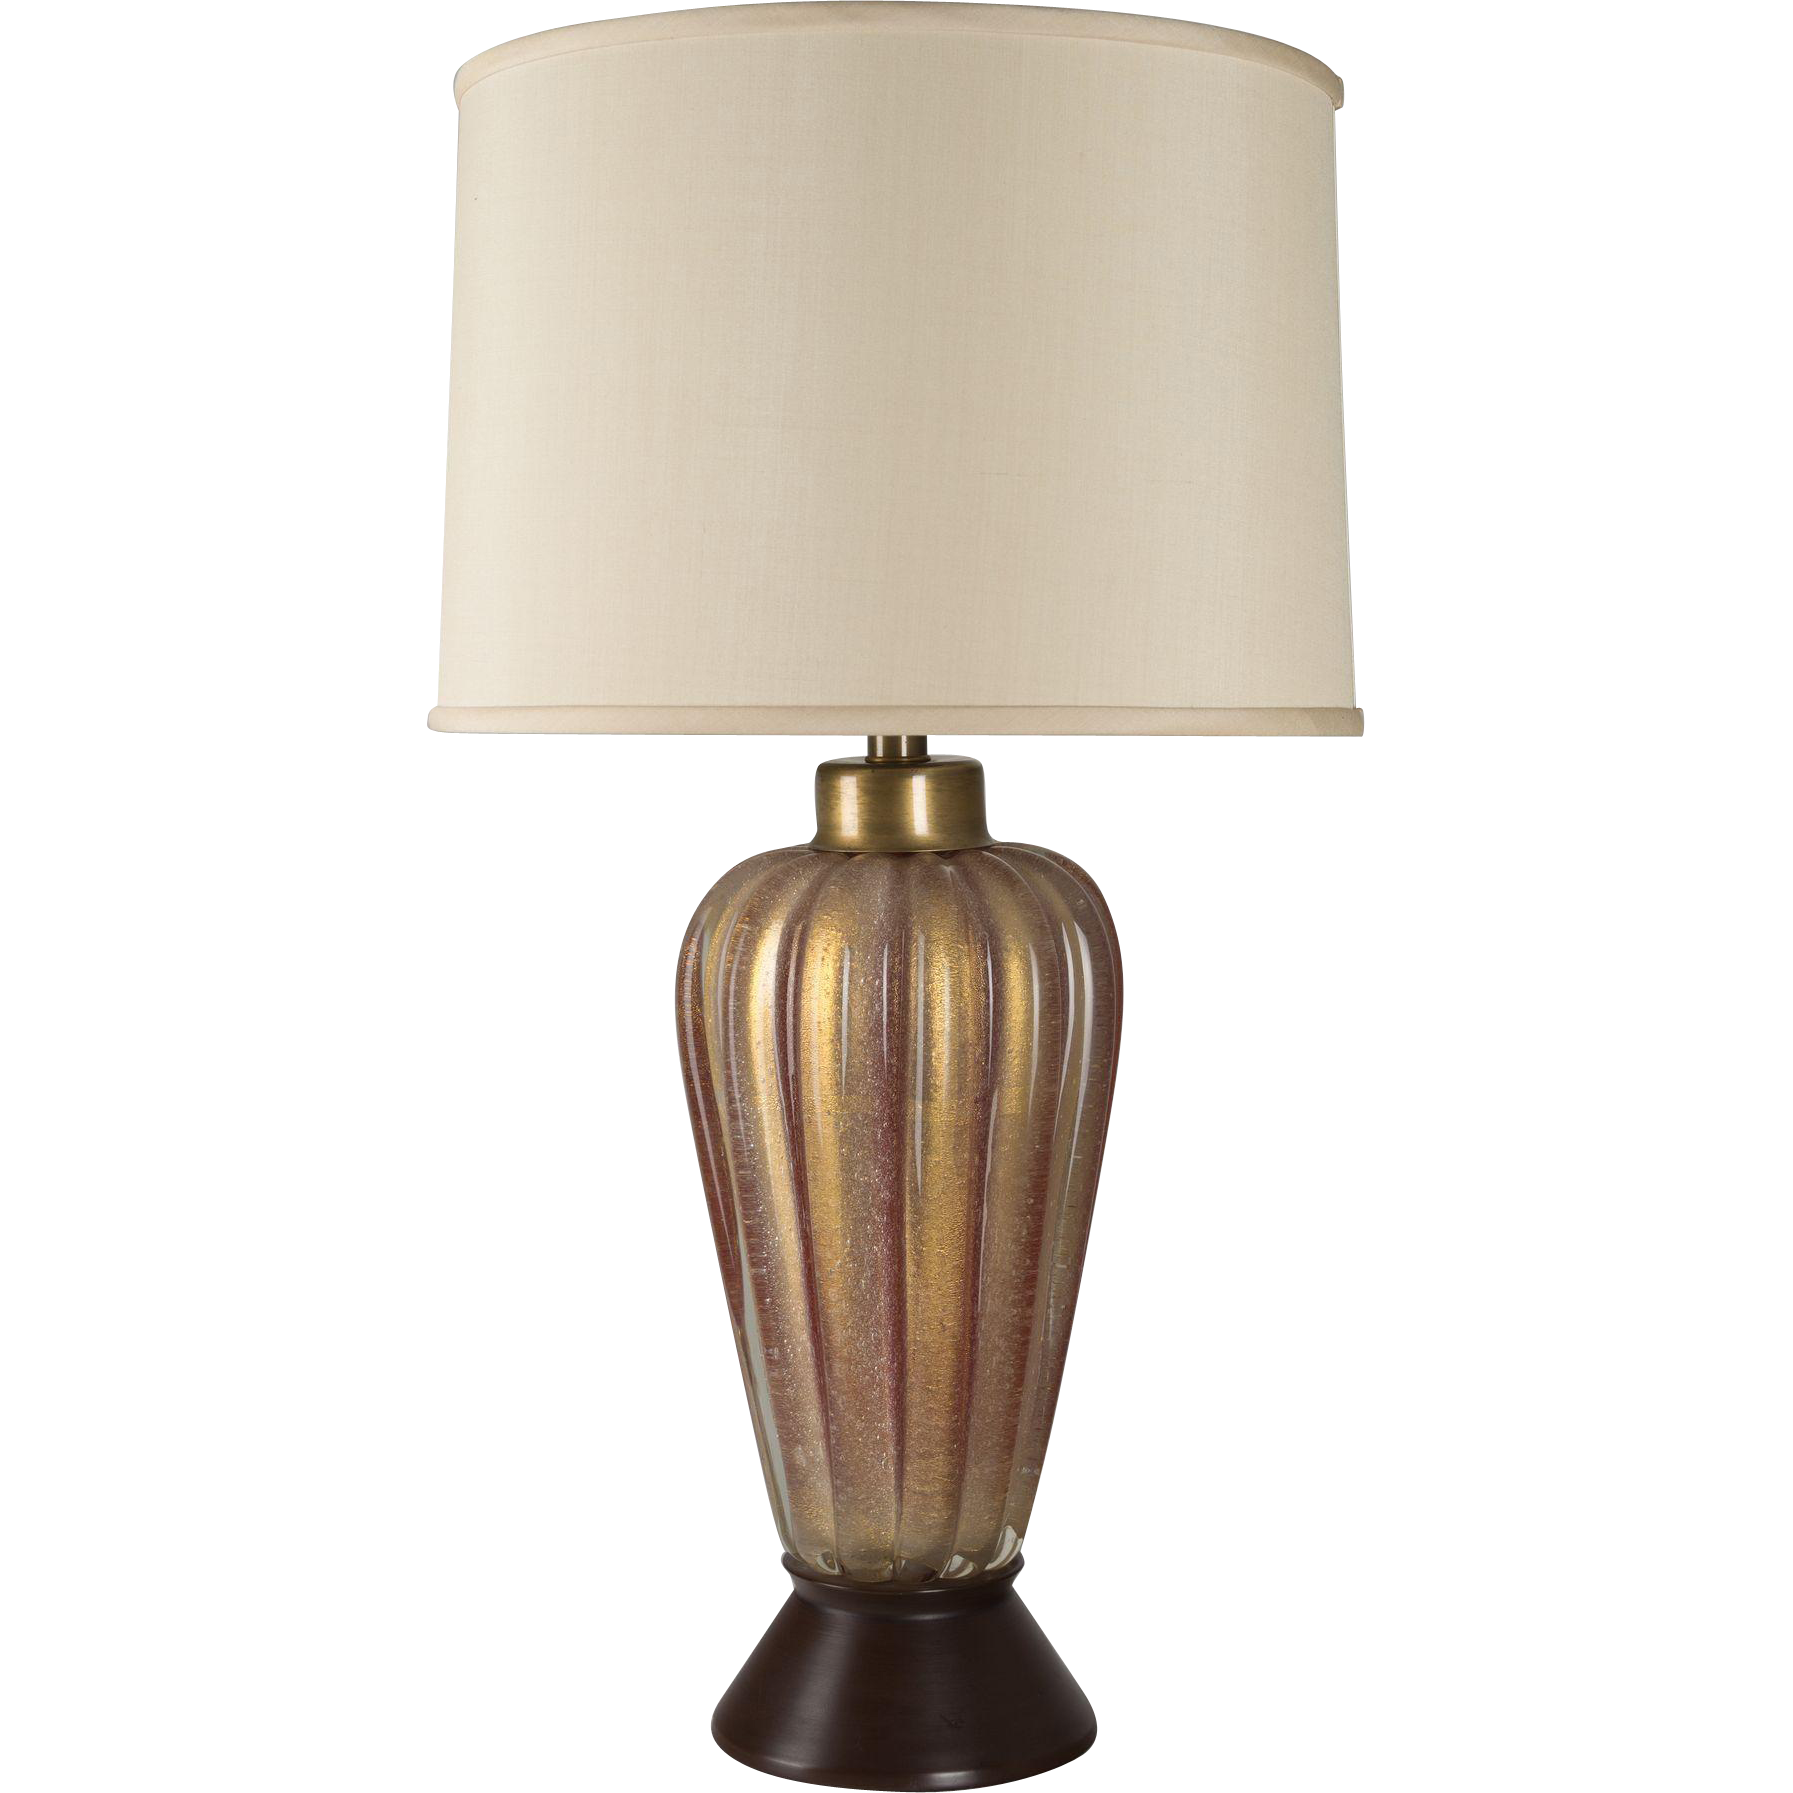 rare seguso red murano glass lamp from ofleury on ruby lane. Black Bedroom Furniture Sets. Home Design Ideas